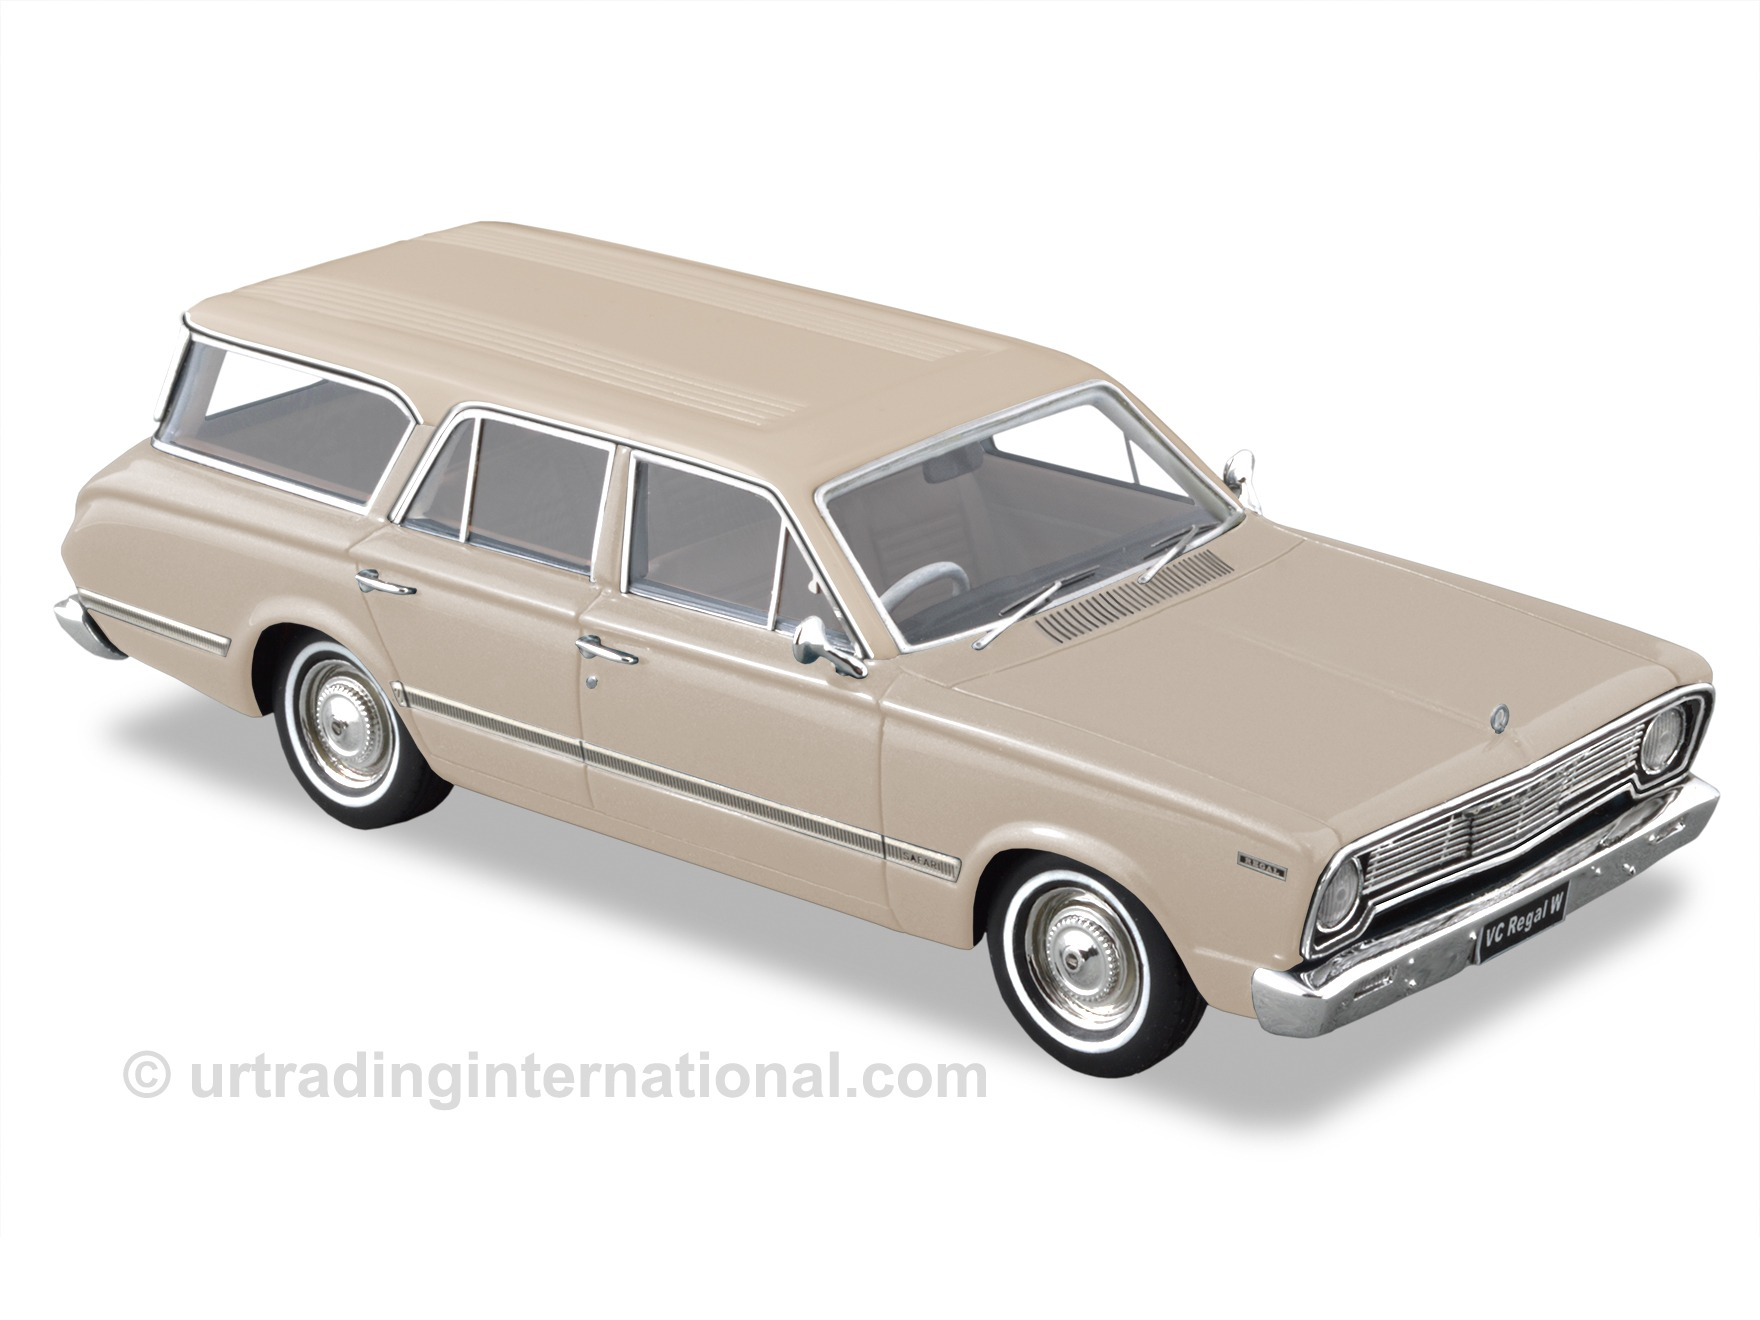 1967 VC Valiant Regal Safari Wagon – Alabaster